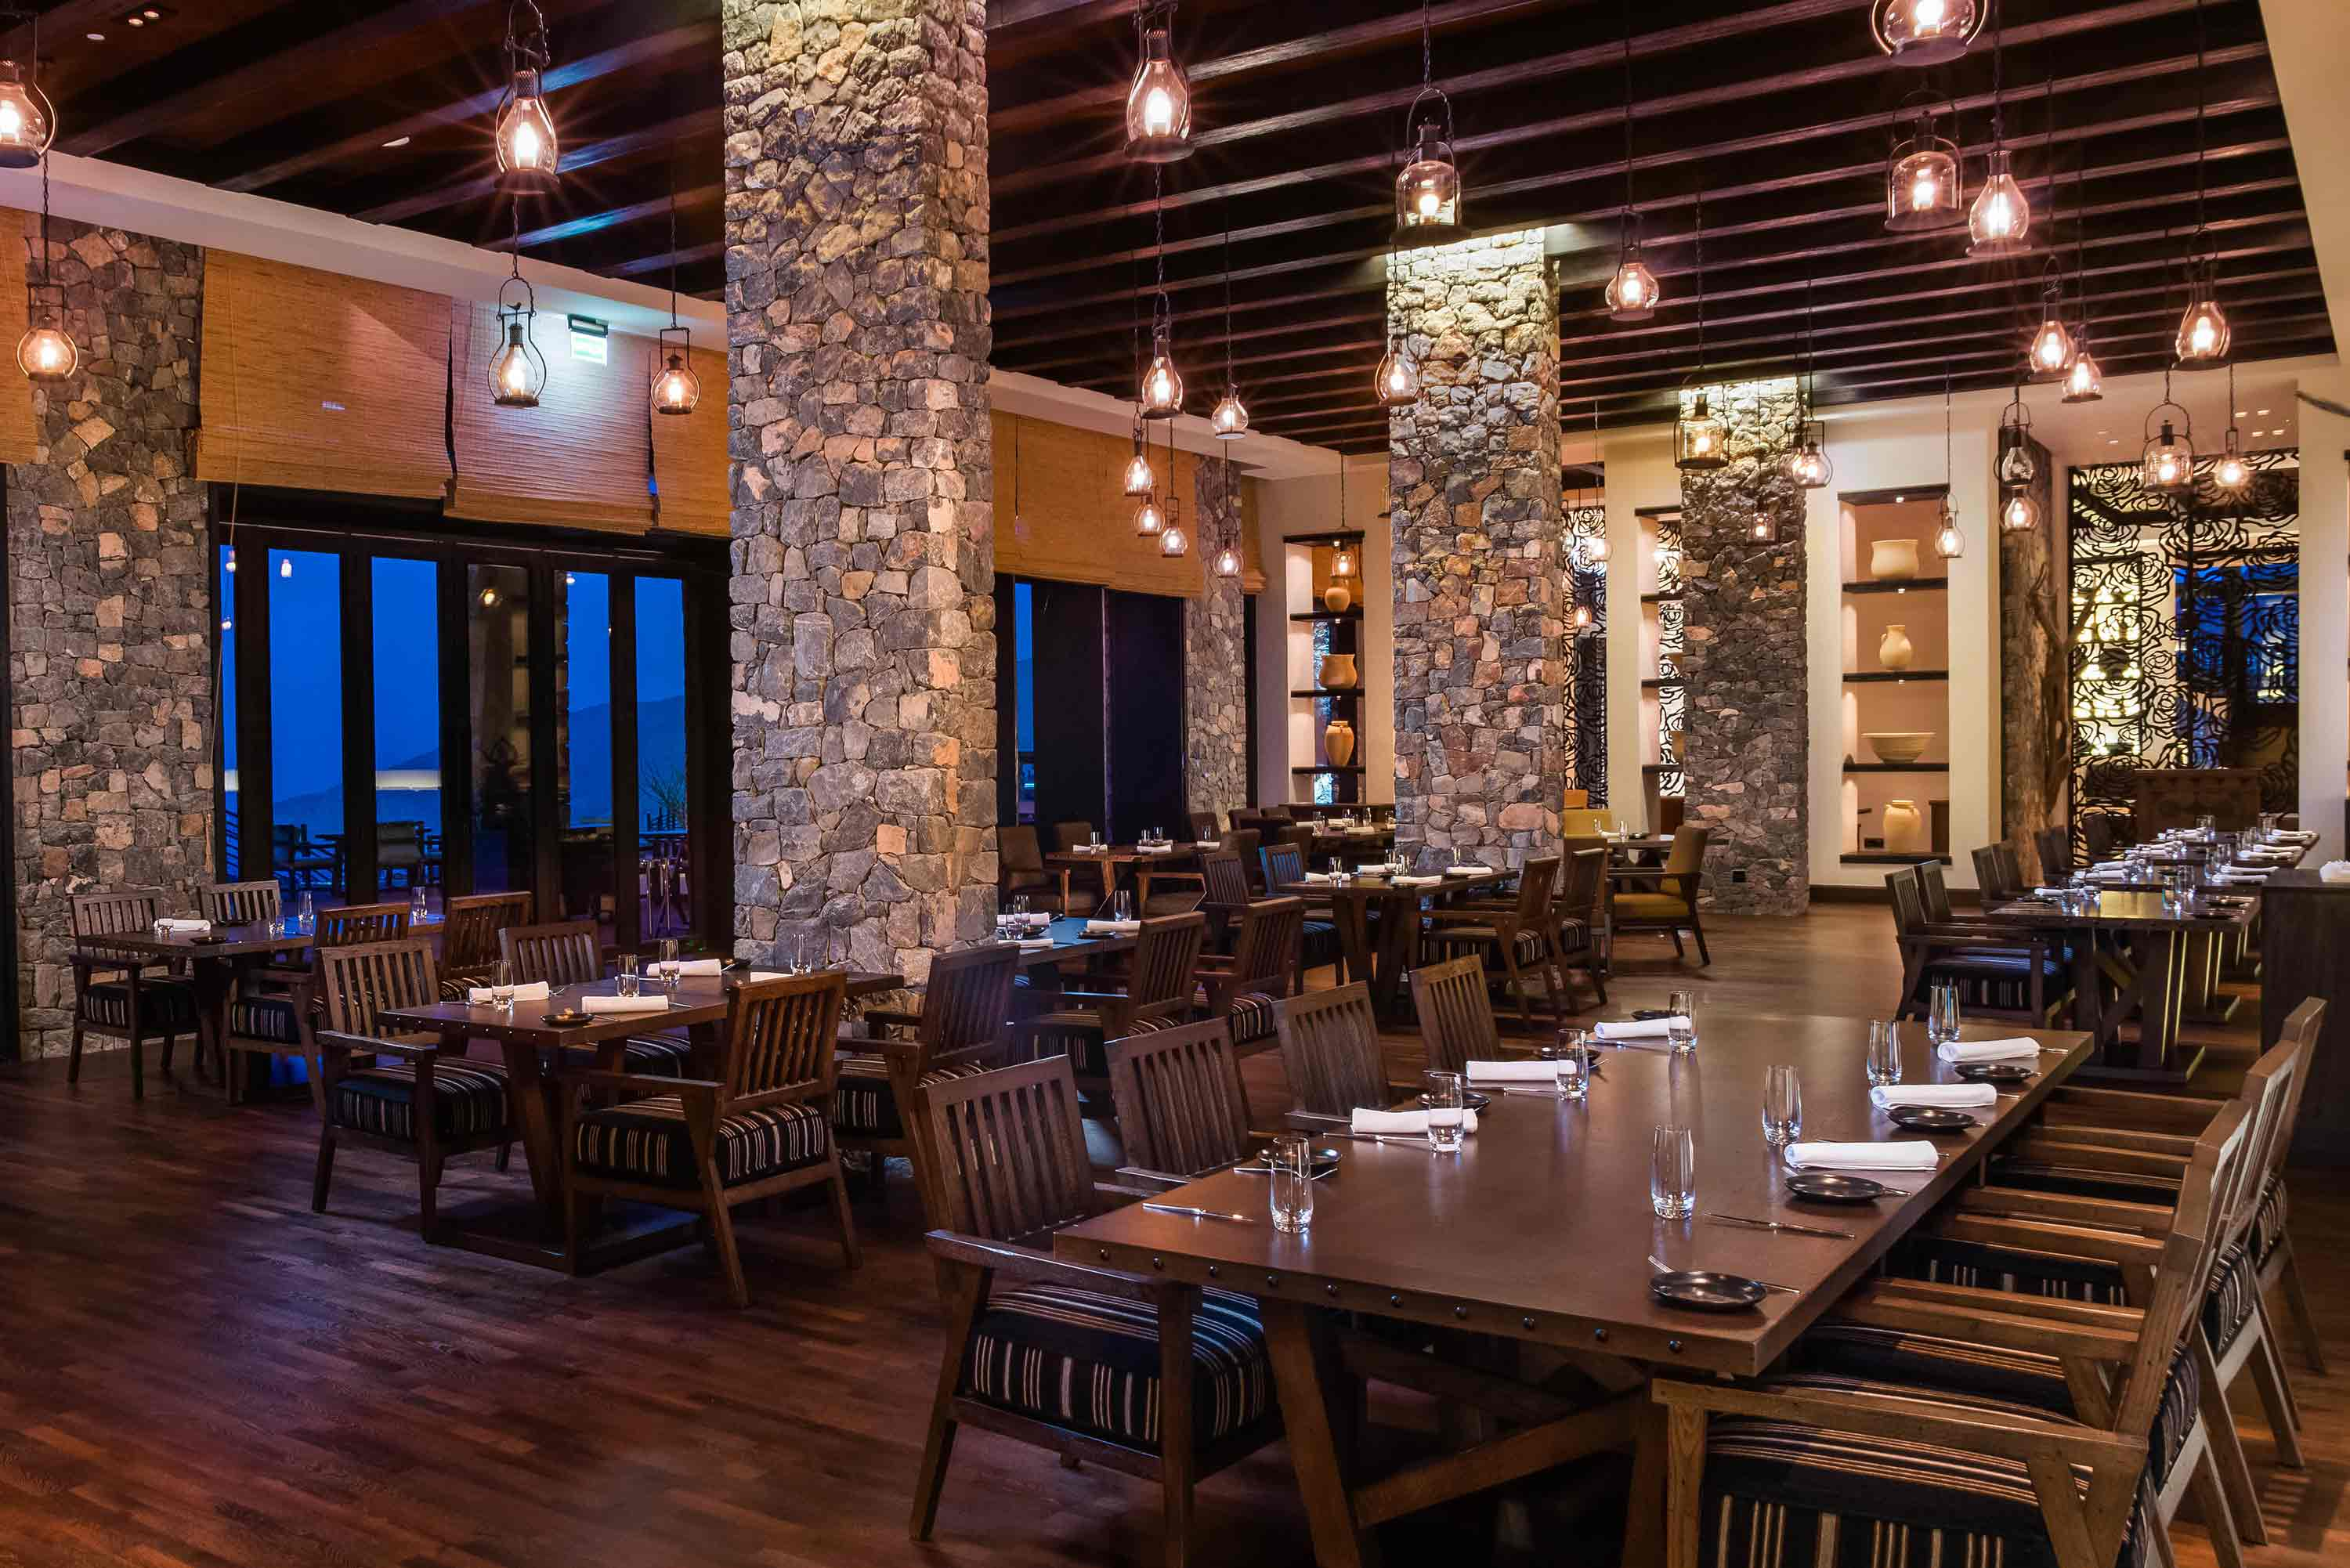 Restaurants in Oman | Juniper Restaurant at Alila Jabal Akhdar Oman